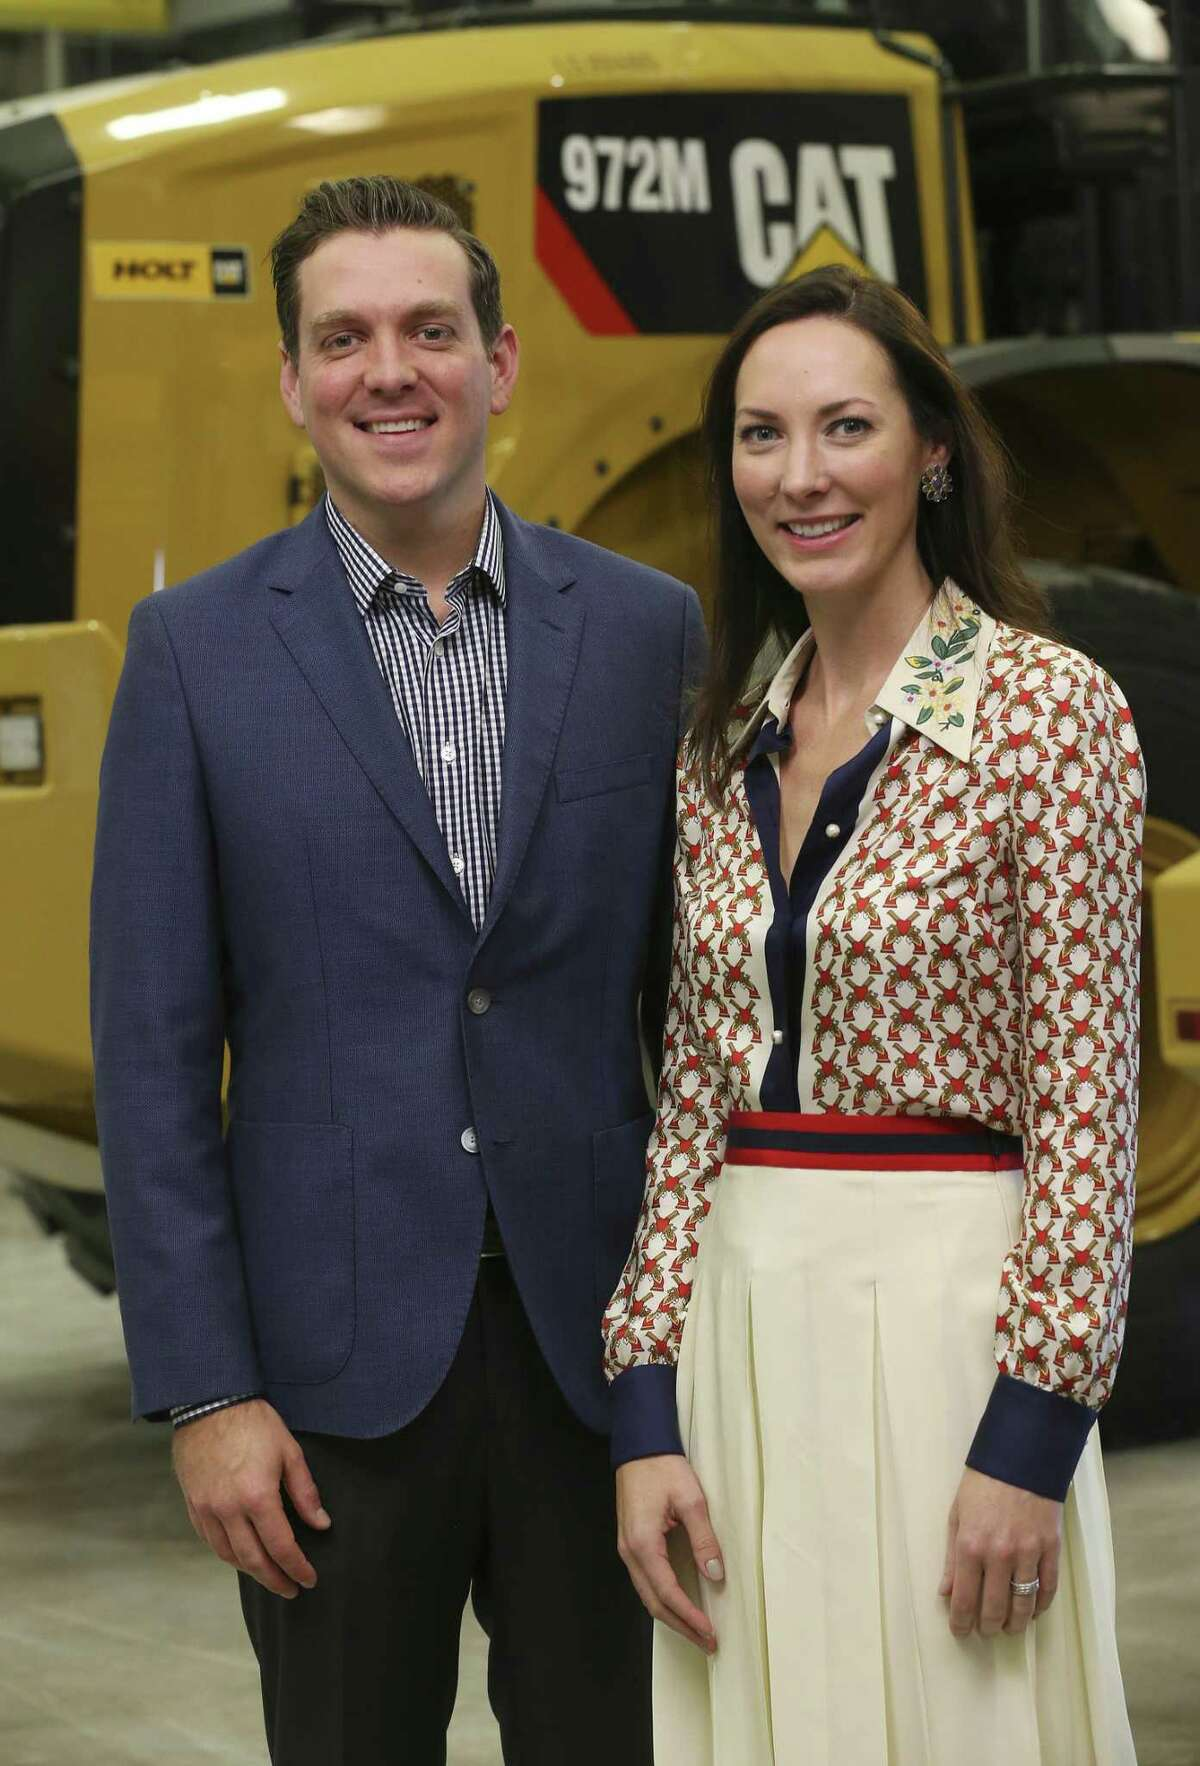 Holt Cat CEO and General Manager Peter J. Holt and his sister, President and Chief Administrative Officer Corinna Holt Richter said taking over the Holt Cat business has opened up doors in both the business and political community.